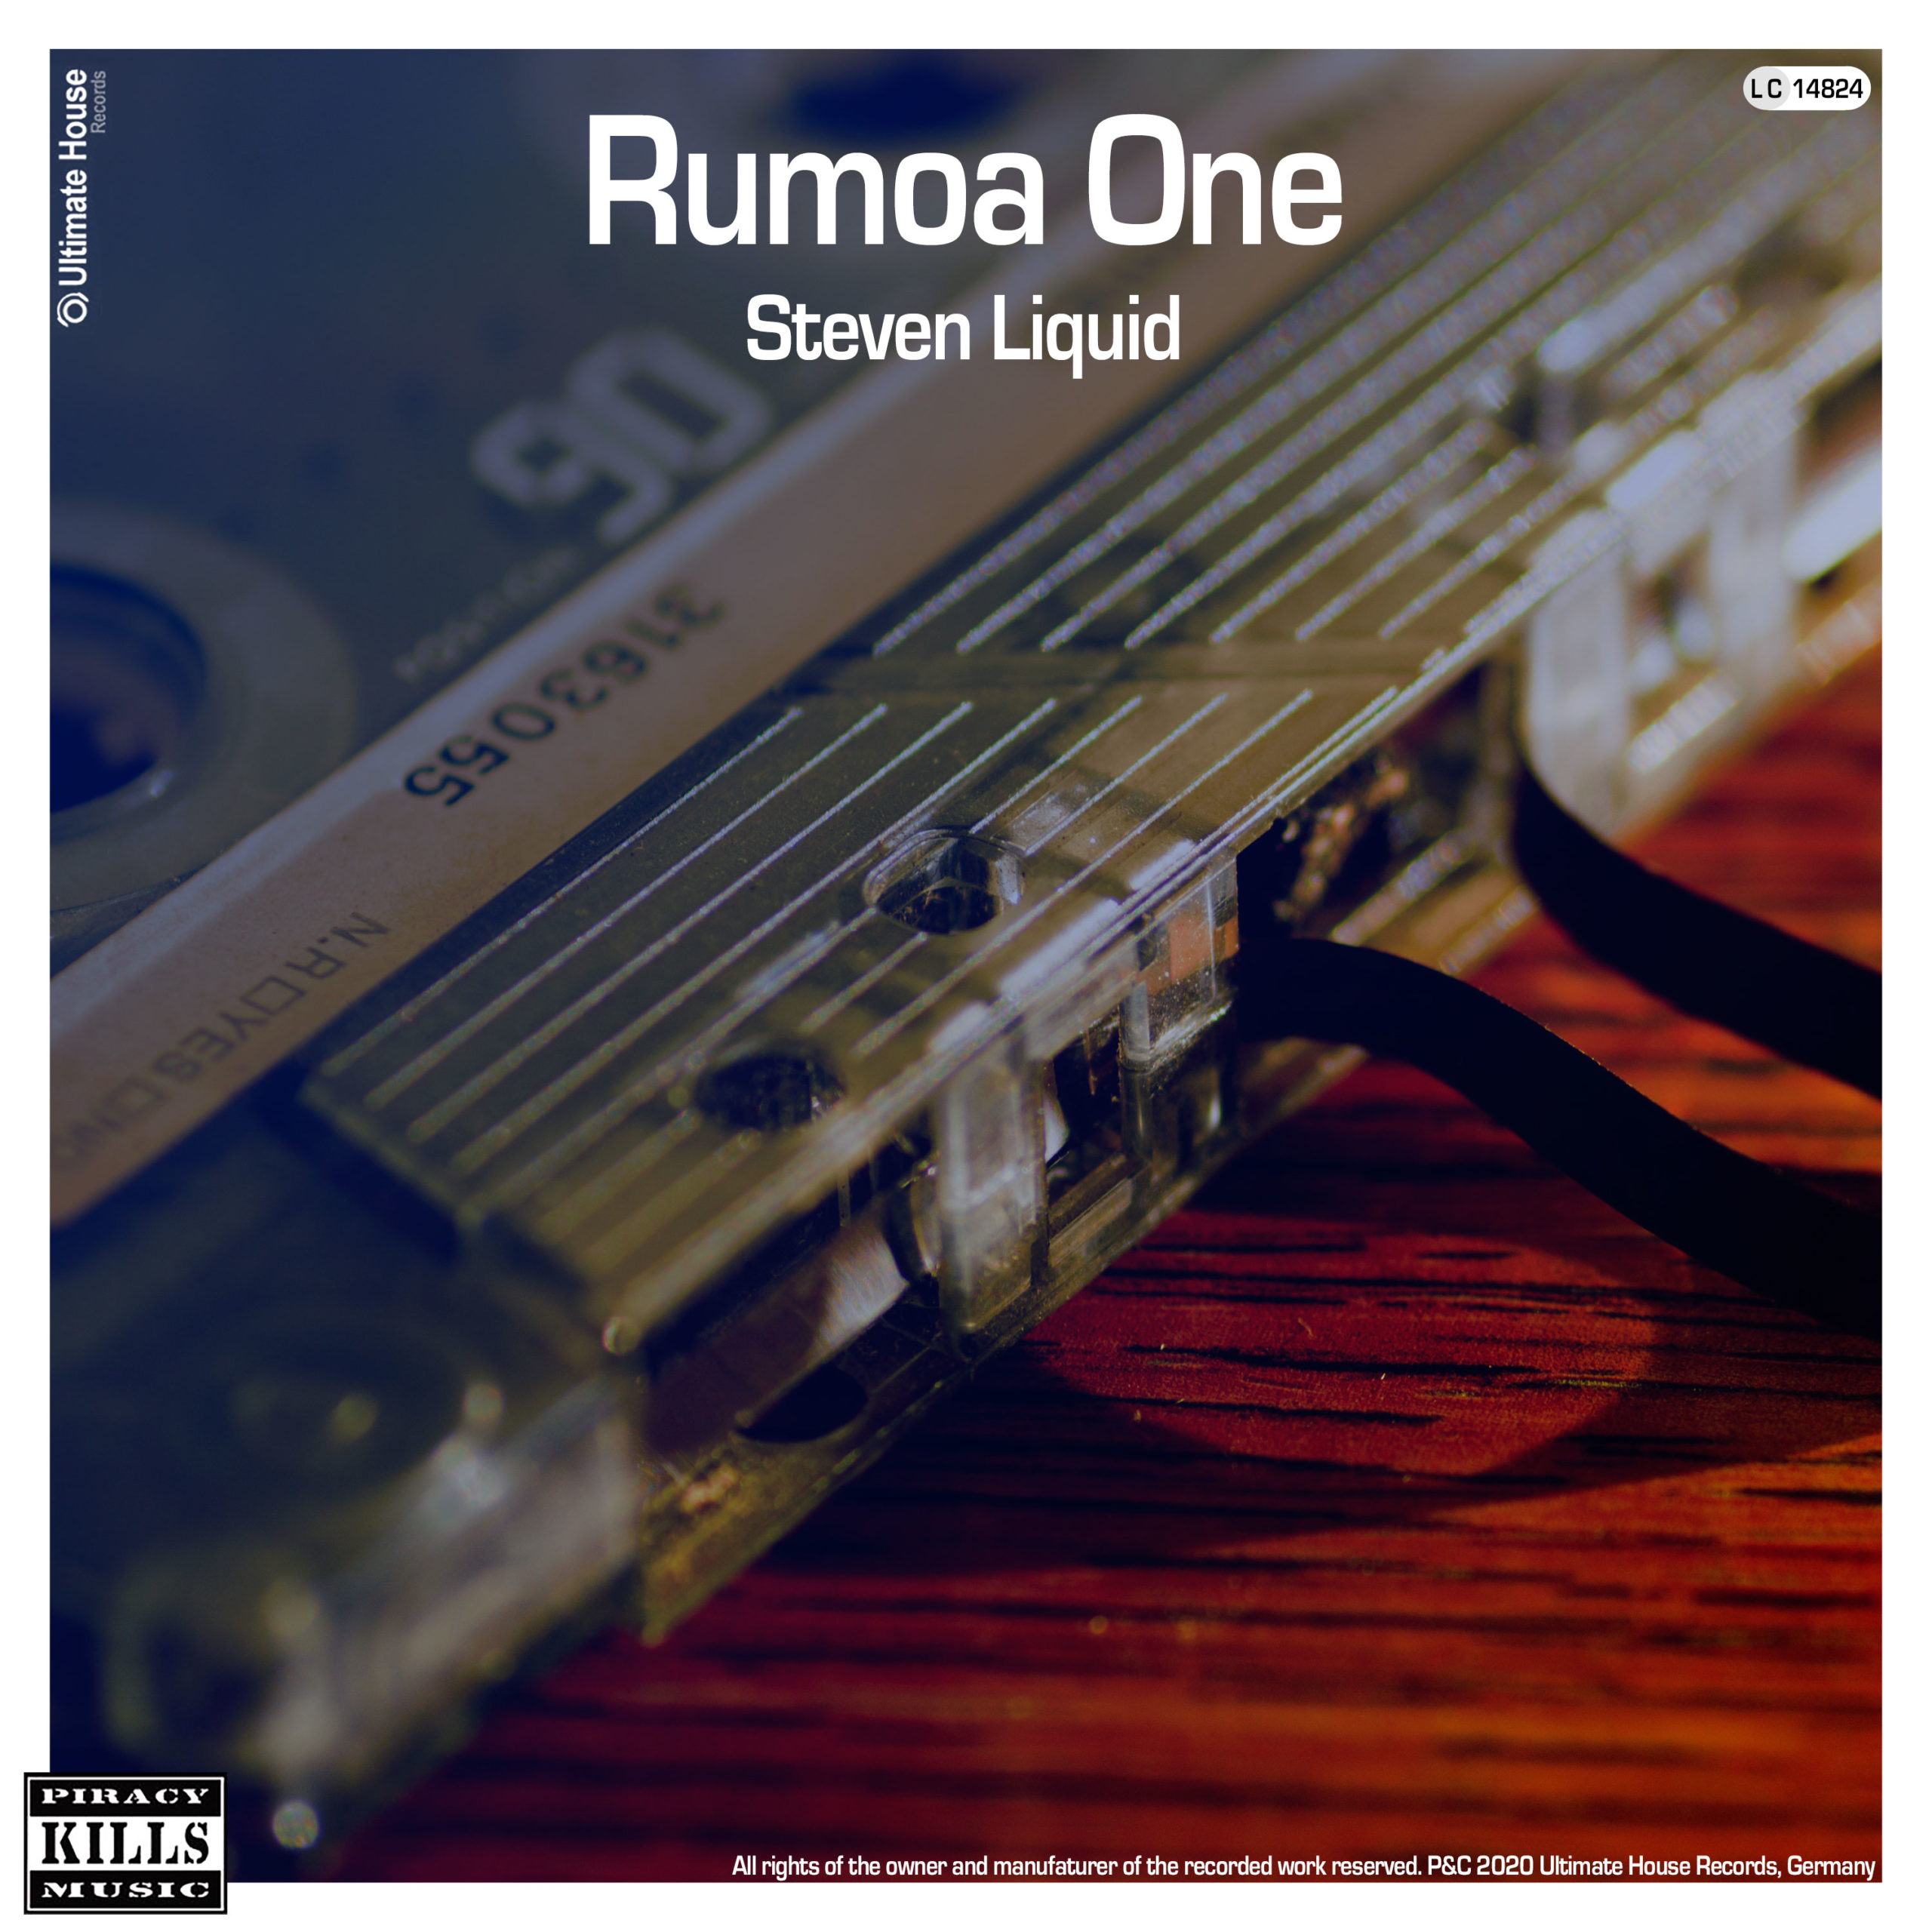 https://www.ultimate-house-records.com/wp-content/uploads/2020/07/143-Rumoa_One-Cover_3000px_web-scaled.jpg